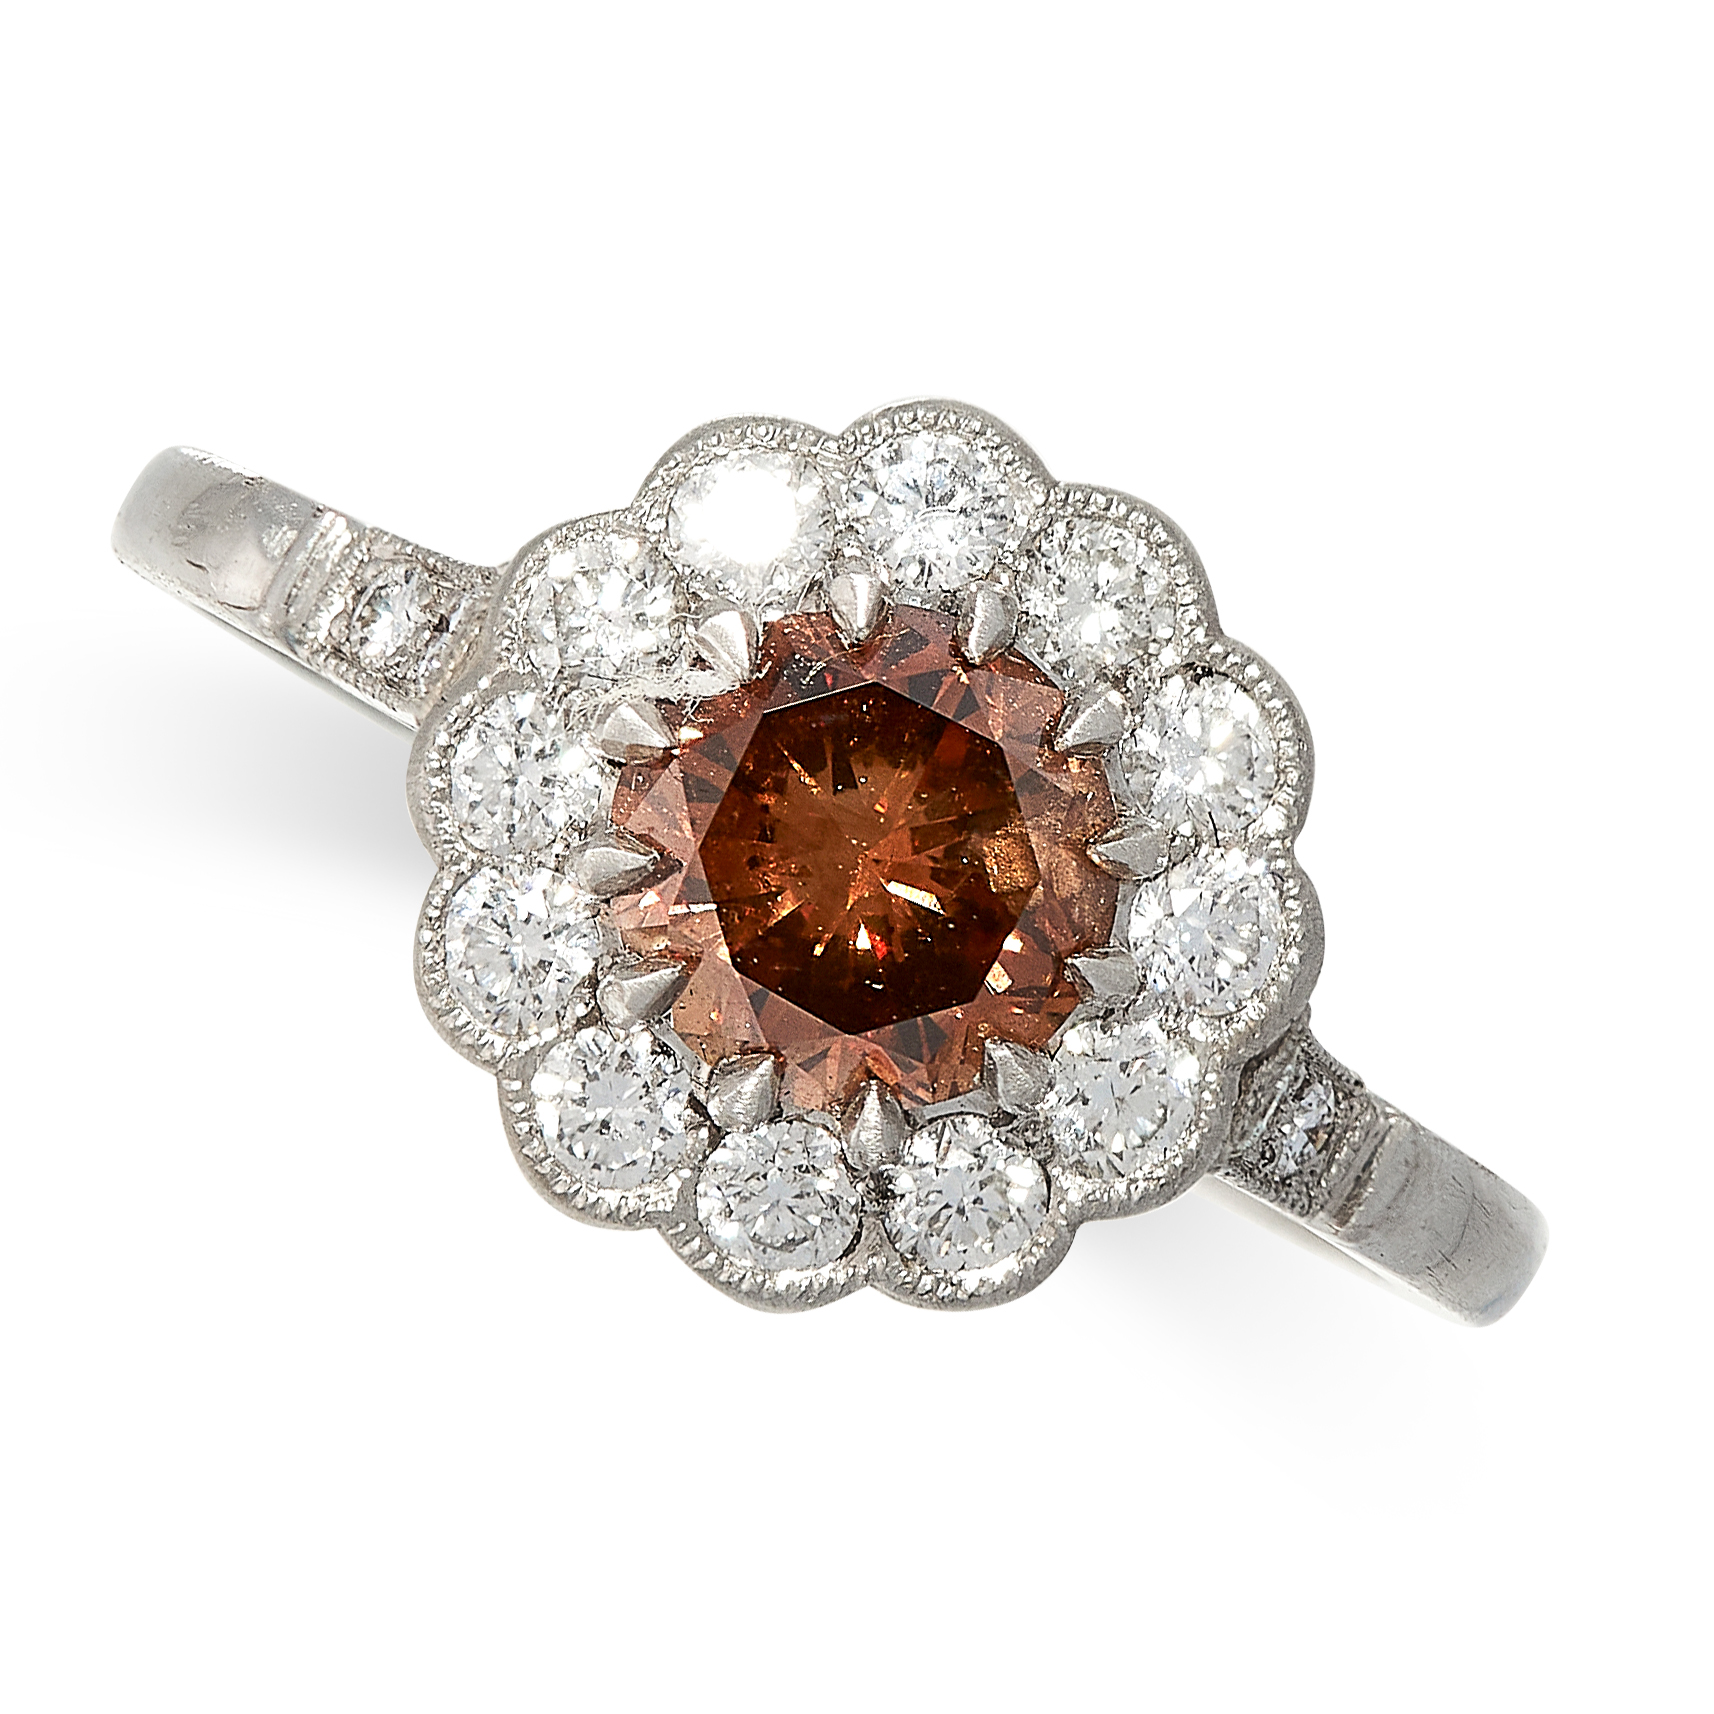 BROWN DIAMOND CLUSTER RING comprising of a round cut brown diamond of 1.00 carats in a border of